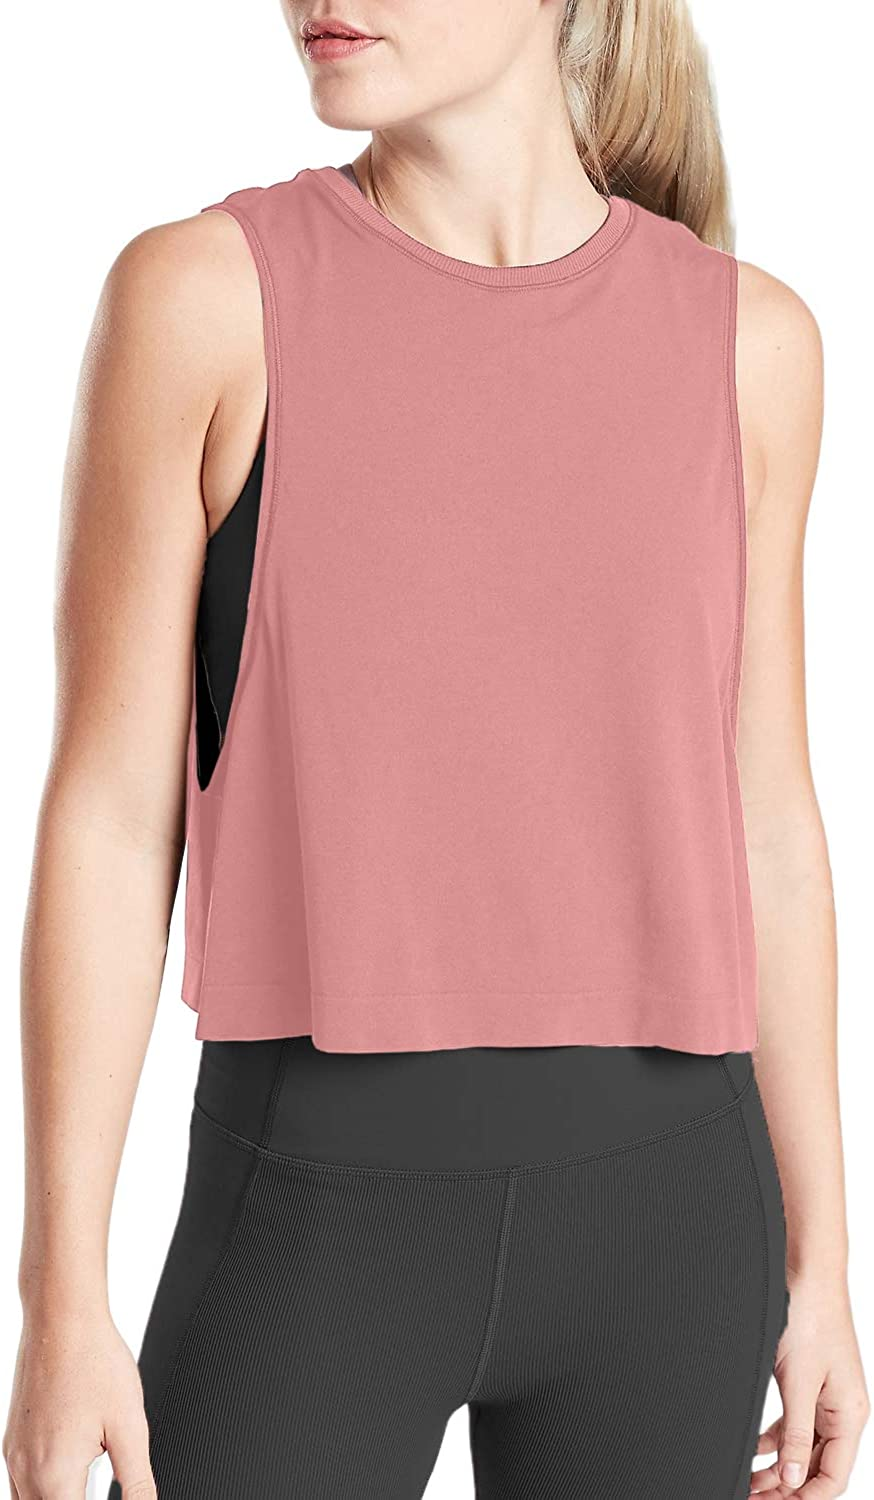 Sanutch Workout Crop Tops for Women Cropped Workout Athletic Tops Workout Clothes Crop Top Workout Shirts for Women